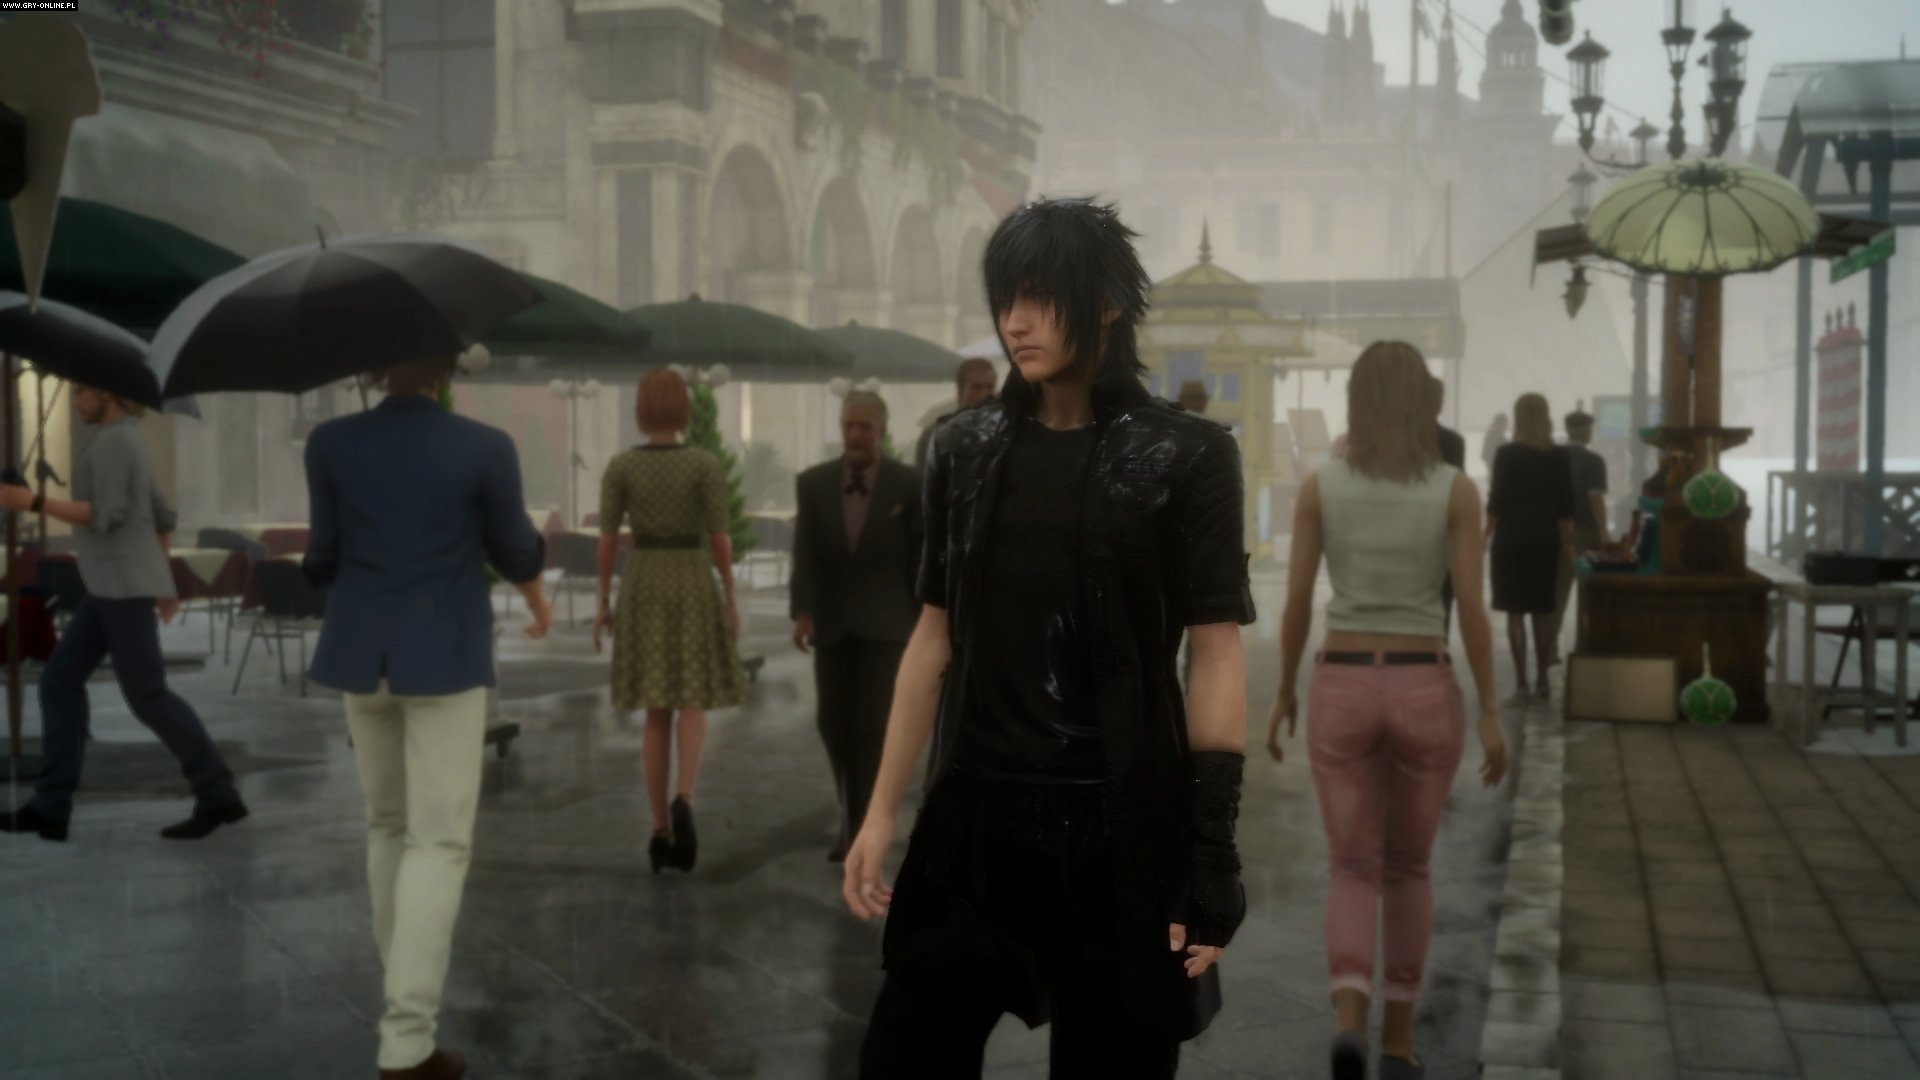 Final Fantasy XV PS4, XONE Games Image 116/308, Square-Enix, Square-Enix / Eidos